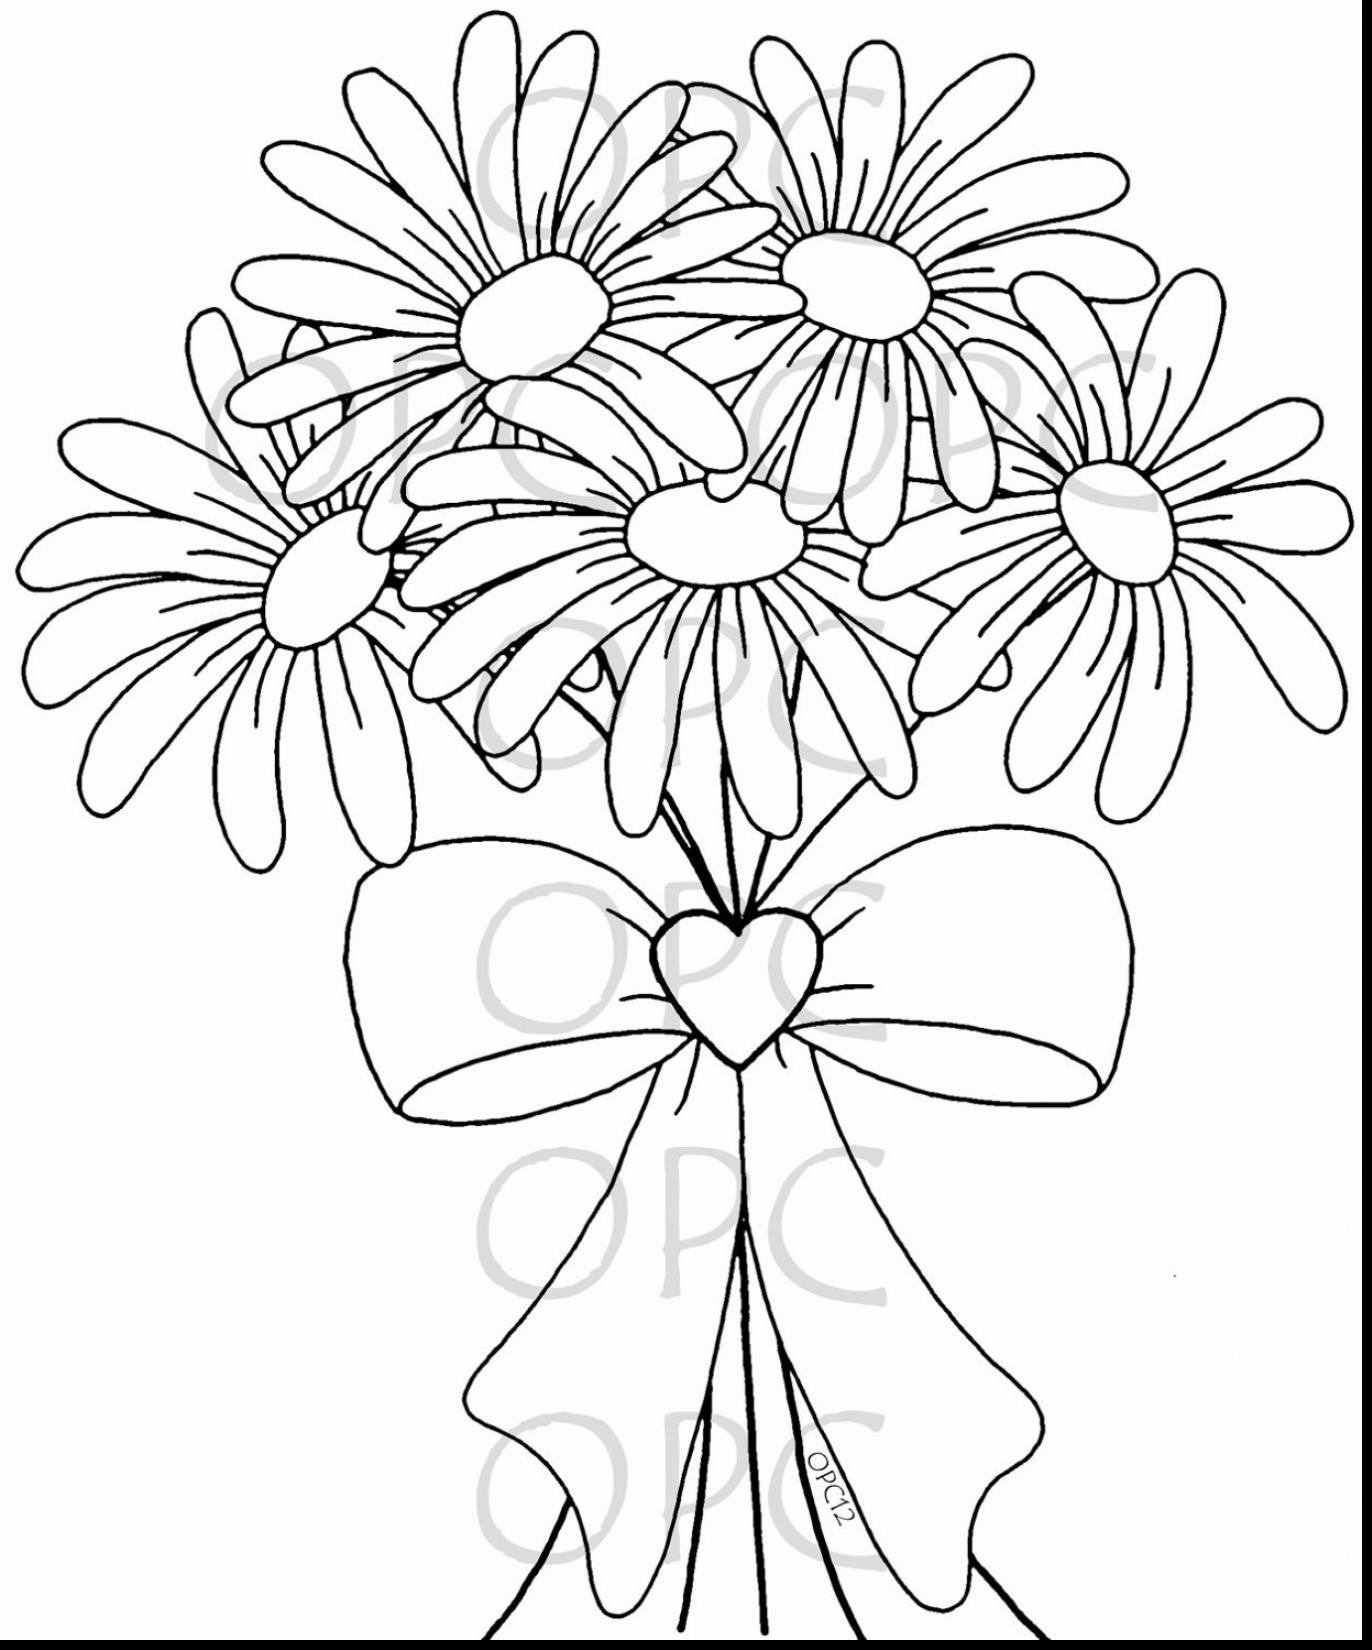 1372x1650 Brilliant Daisy Flower Coloring Pages With On Coloring Pages Daisy